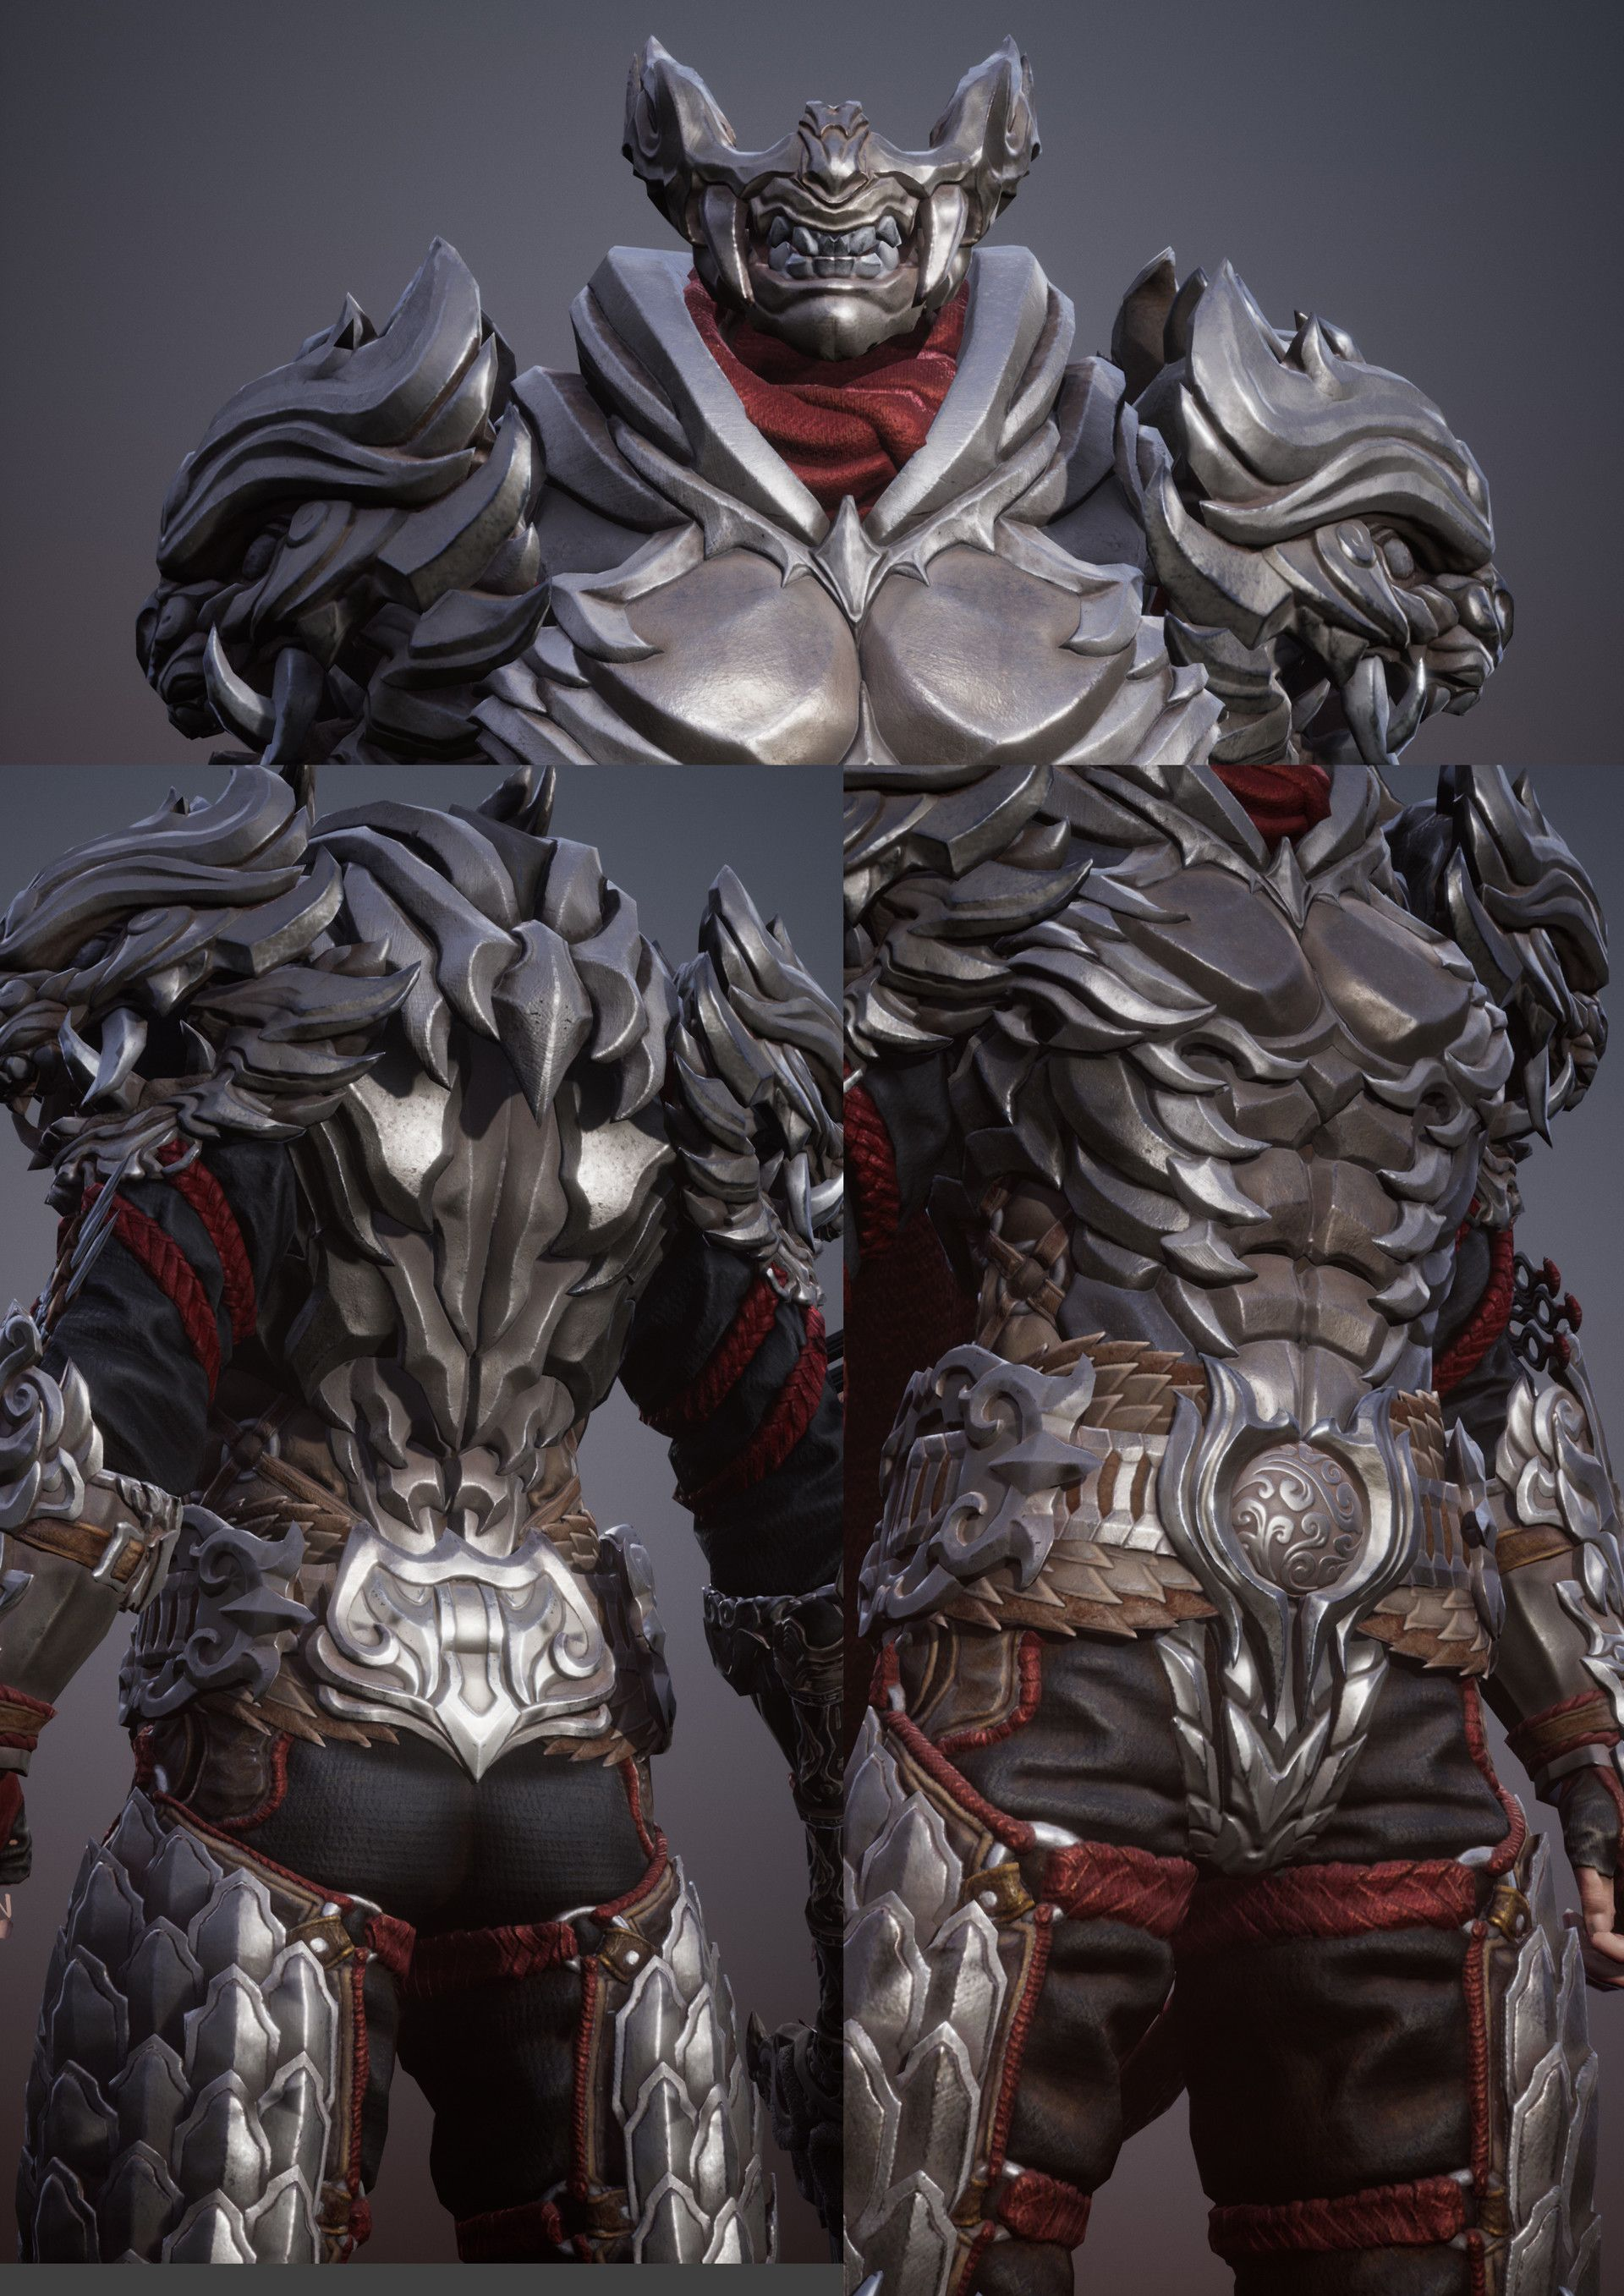 Artstation Warrior Fang Woo In 2020 Fantasy Armor Armor Concept Dragon Armor Unenchanted armor will begin to appear throughout skyrim at level 40 and enchanted variants can be found at level 41. pinterest